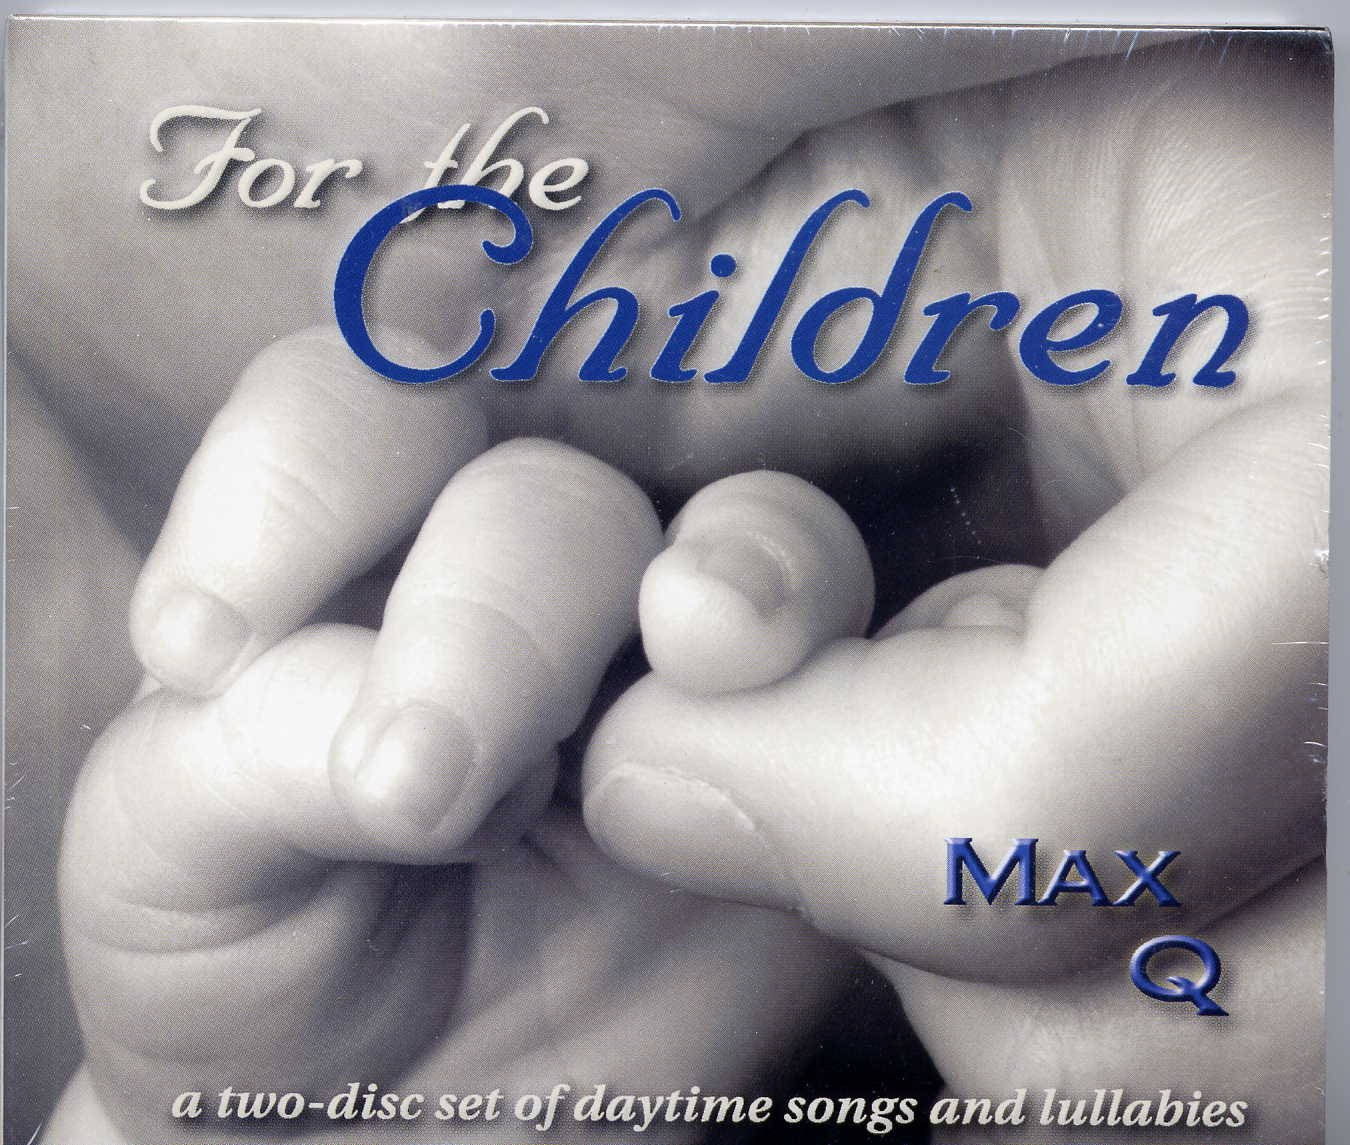 For the Children - A Two-disc Set of Daytime Songs and Lullabies by